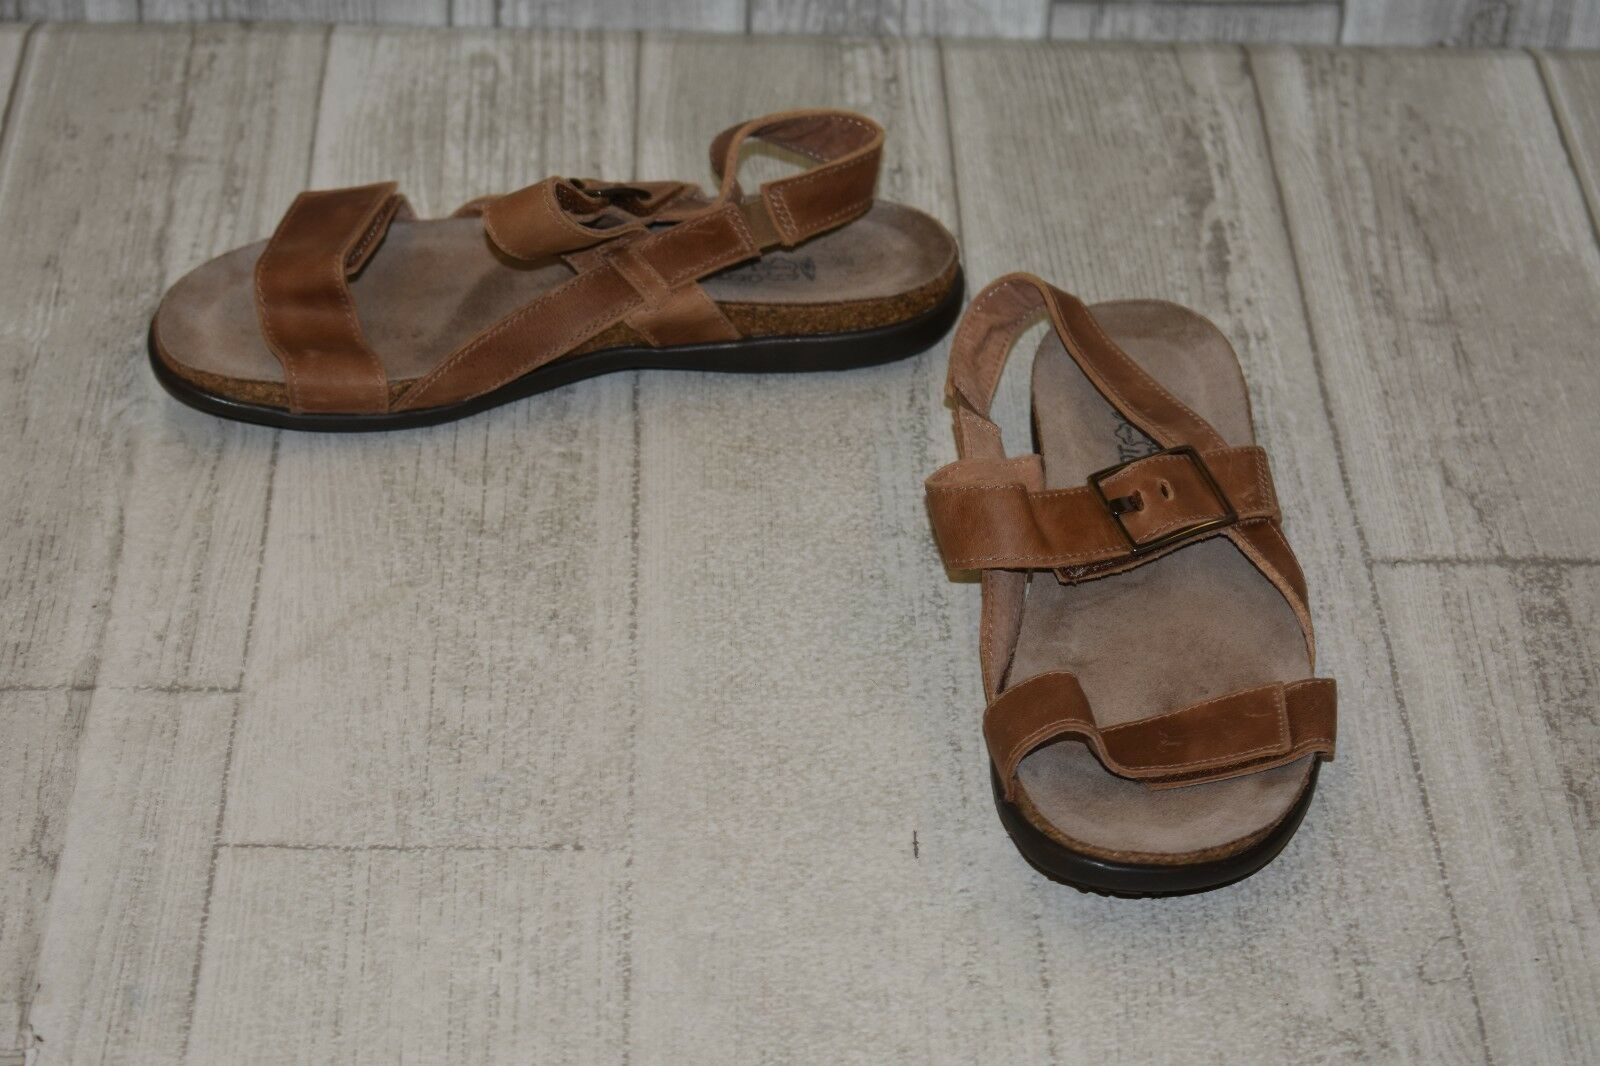 Naot Norah Leather Footbed Sandals, Women's Size 7, Latte